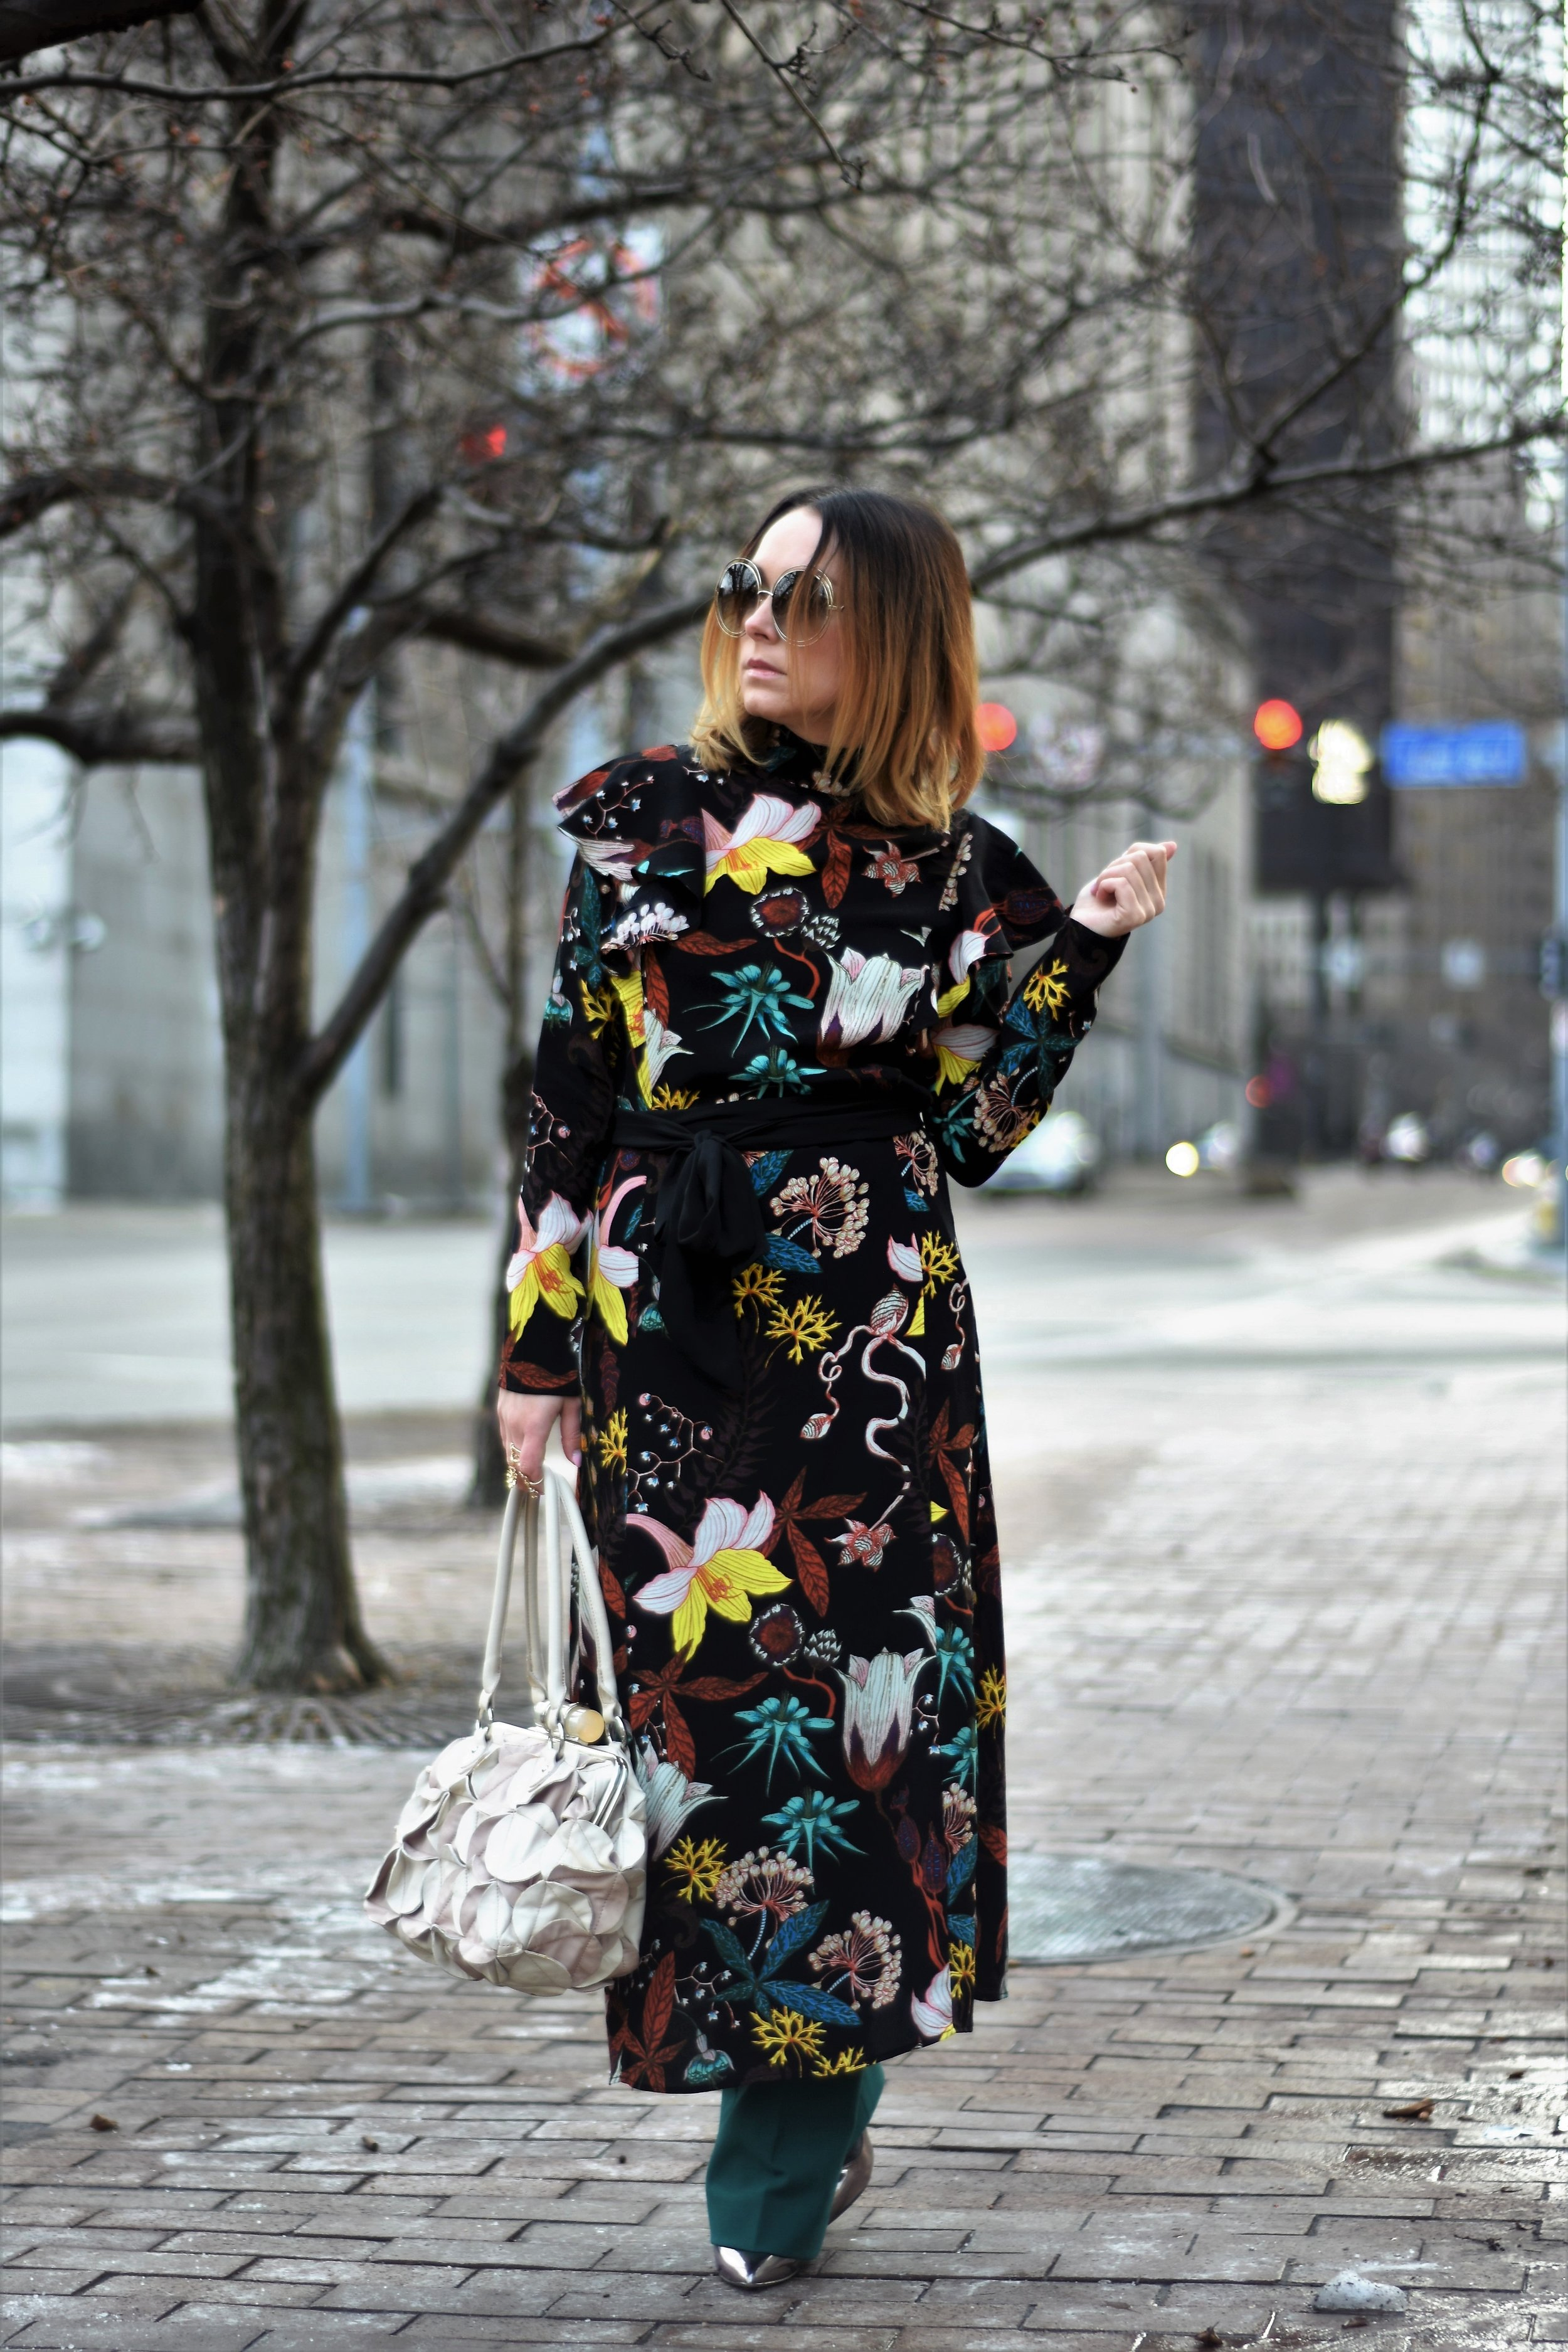 There's something super fresh about how tropical this particular floral print is.